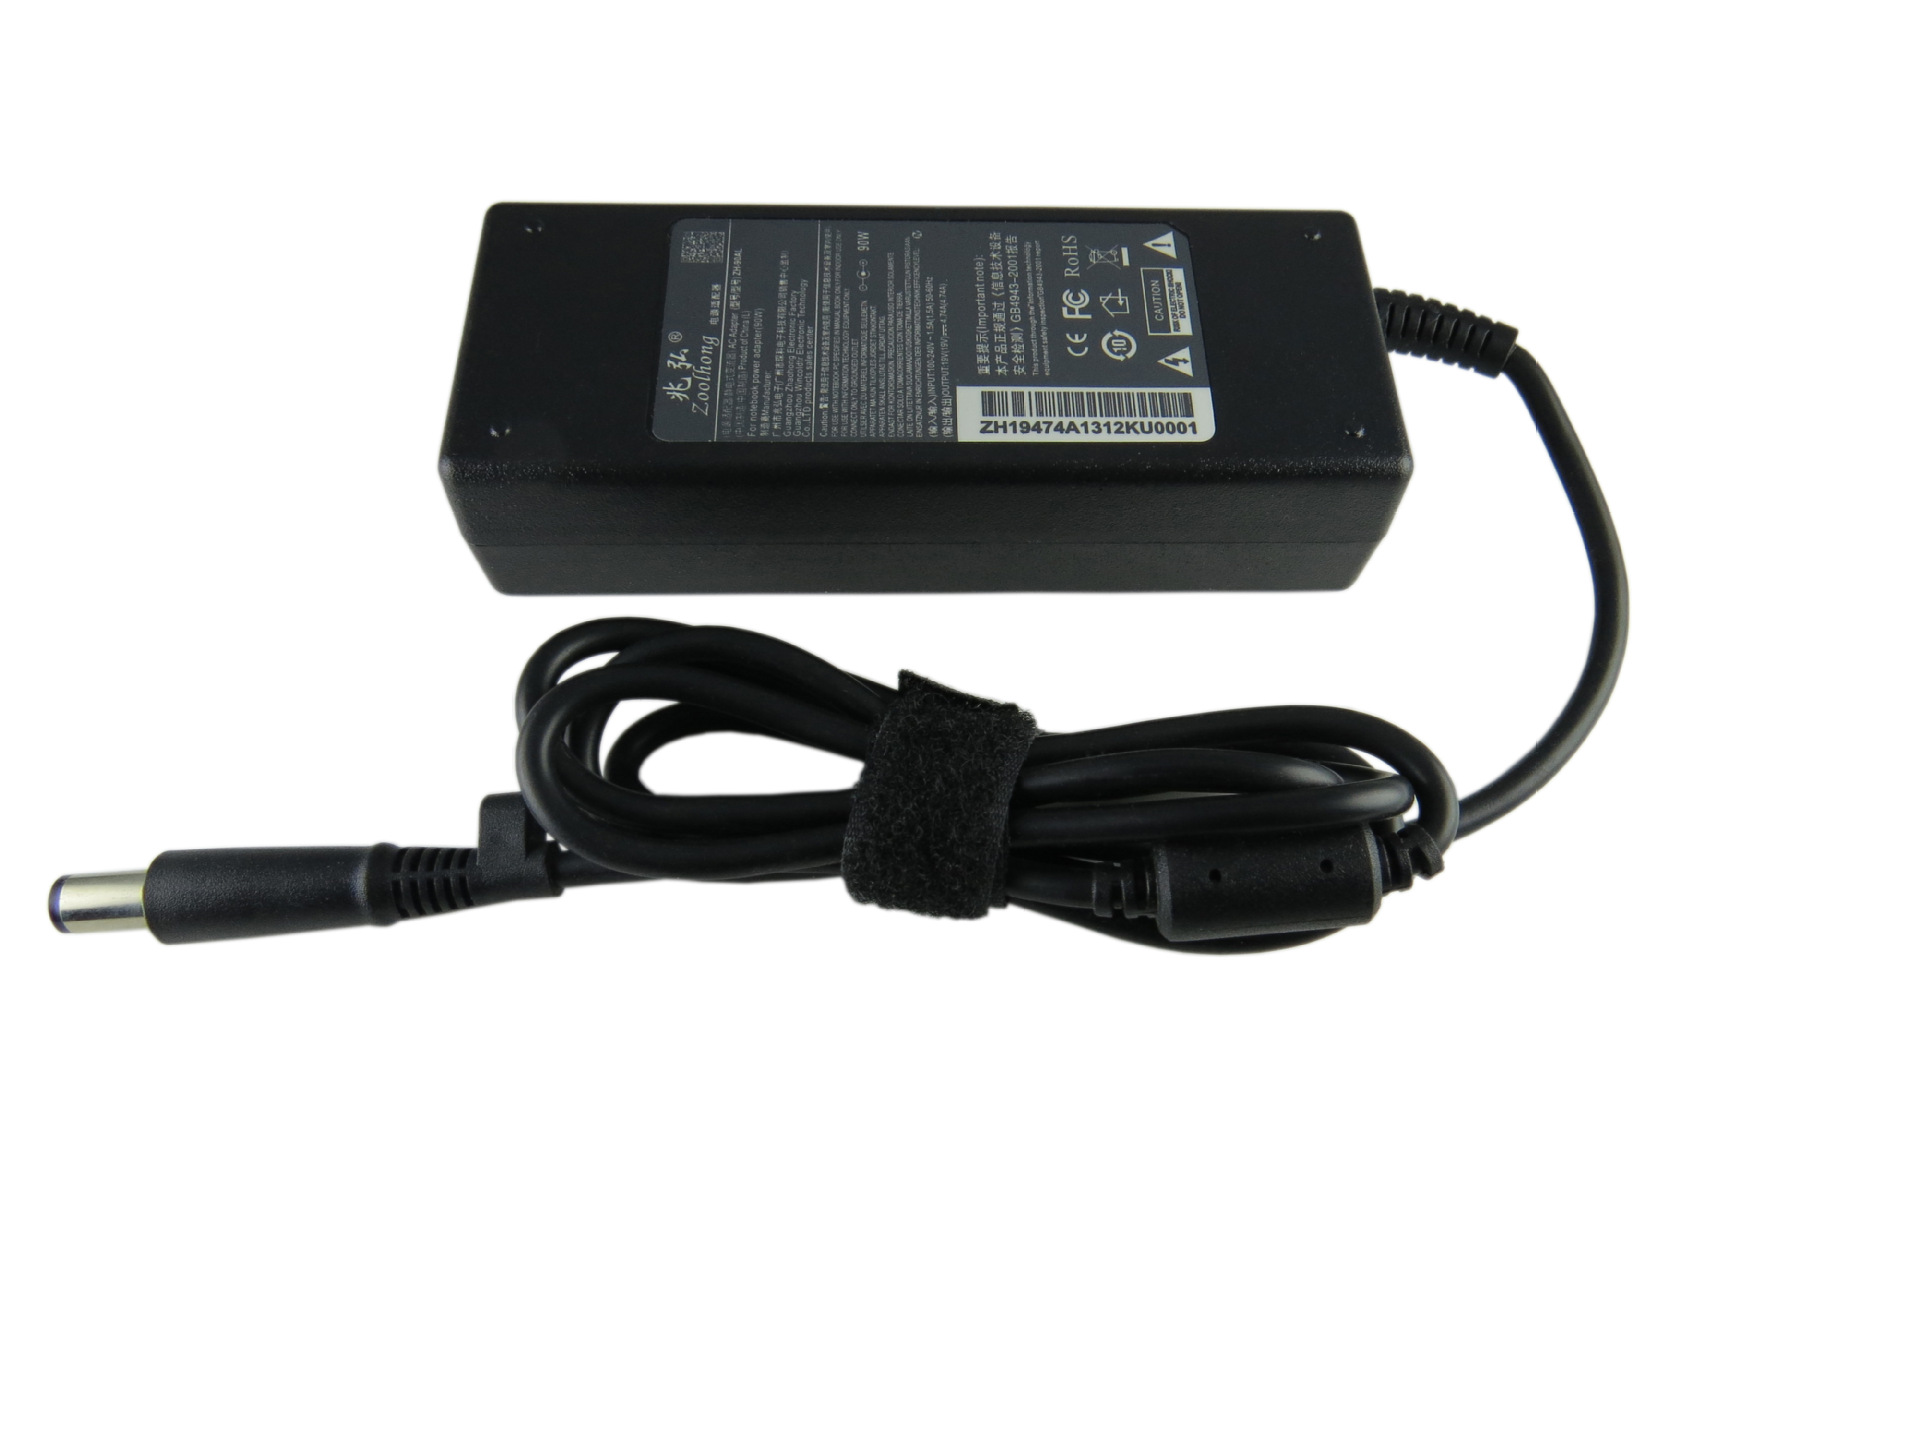 19V 4.74A 90W Ac Laptop Power Adapter լիցքավորիչ Hp Nc6220 Nc6230 Nc6320 Nc6400 Nx6115 Nx6120 Nx6125 Pavilion Dv3 Dv4 Dv5 Dv6